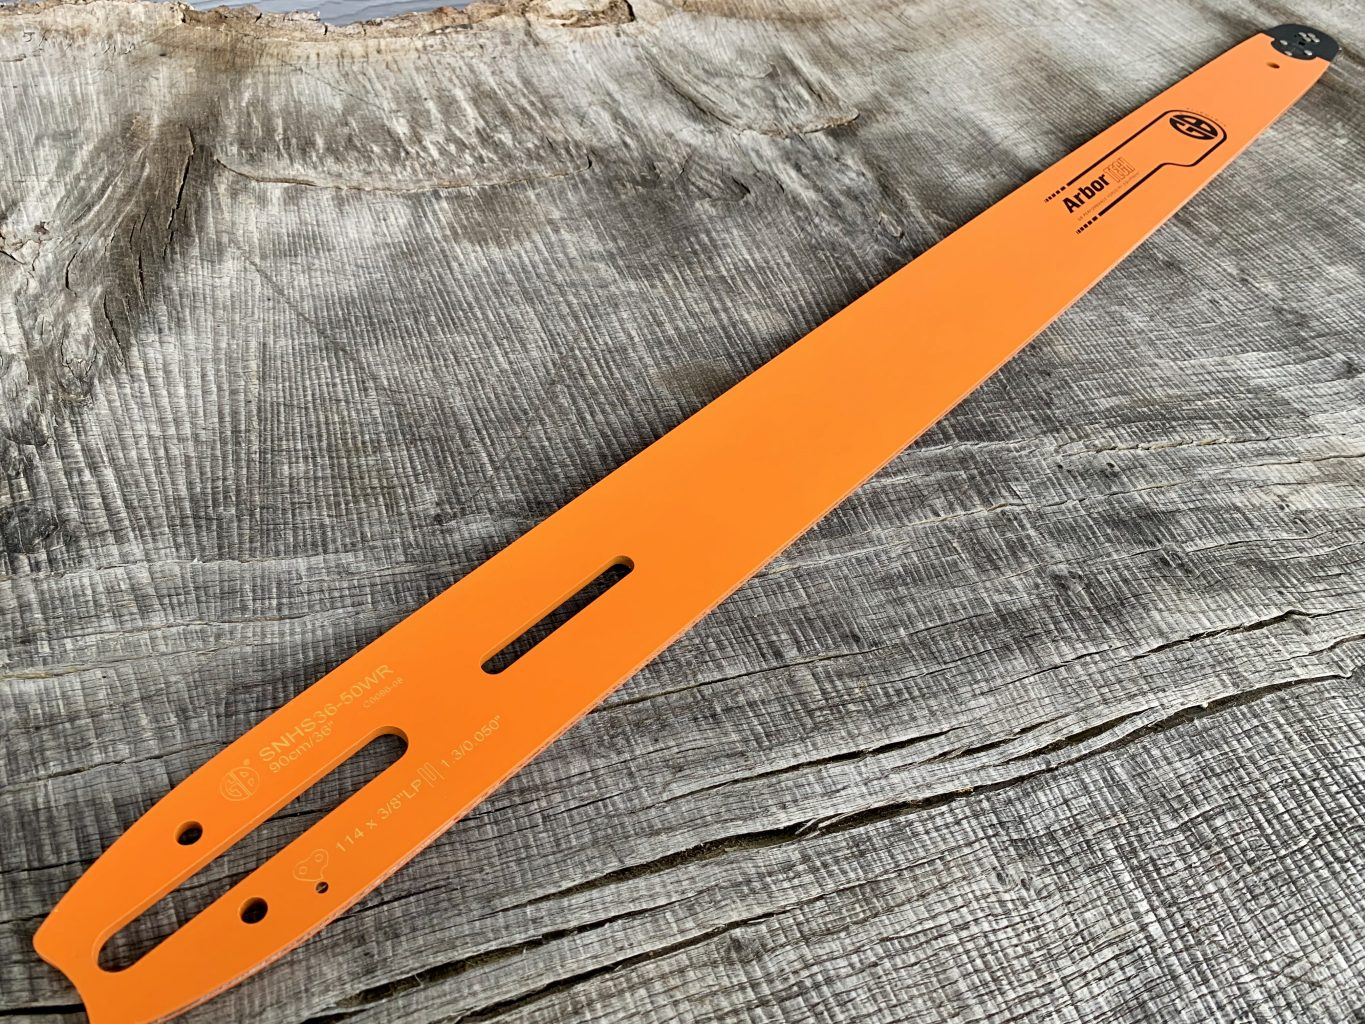 """SNHS36-50WR 36""""[91cm] GB Slotted Lo Pro Milling Bar For Stihl 044, 045, 046, 048, 064, 065, 066, MS440, MS441, MS460, MS461, MS650, MS660, MS661 3/8 Lo Pro .050 114 drive links"""